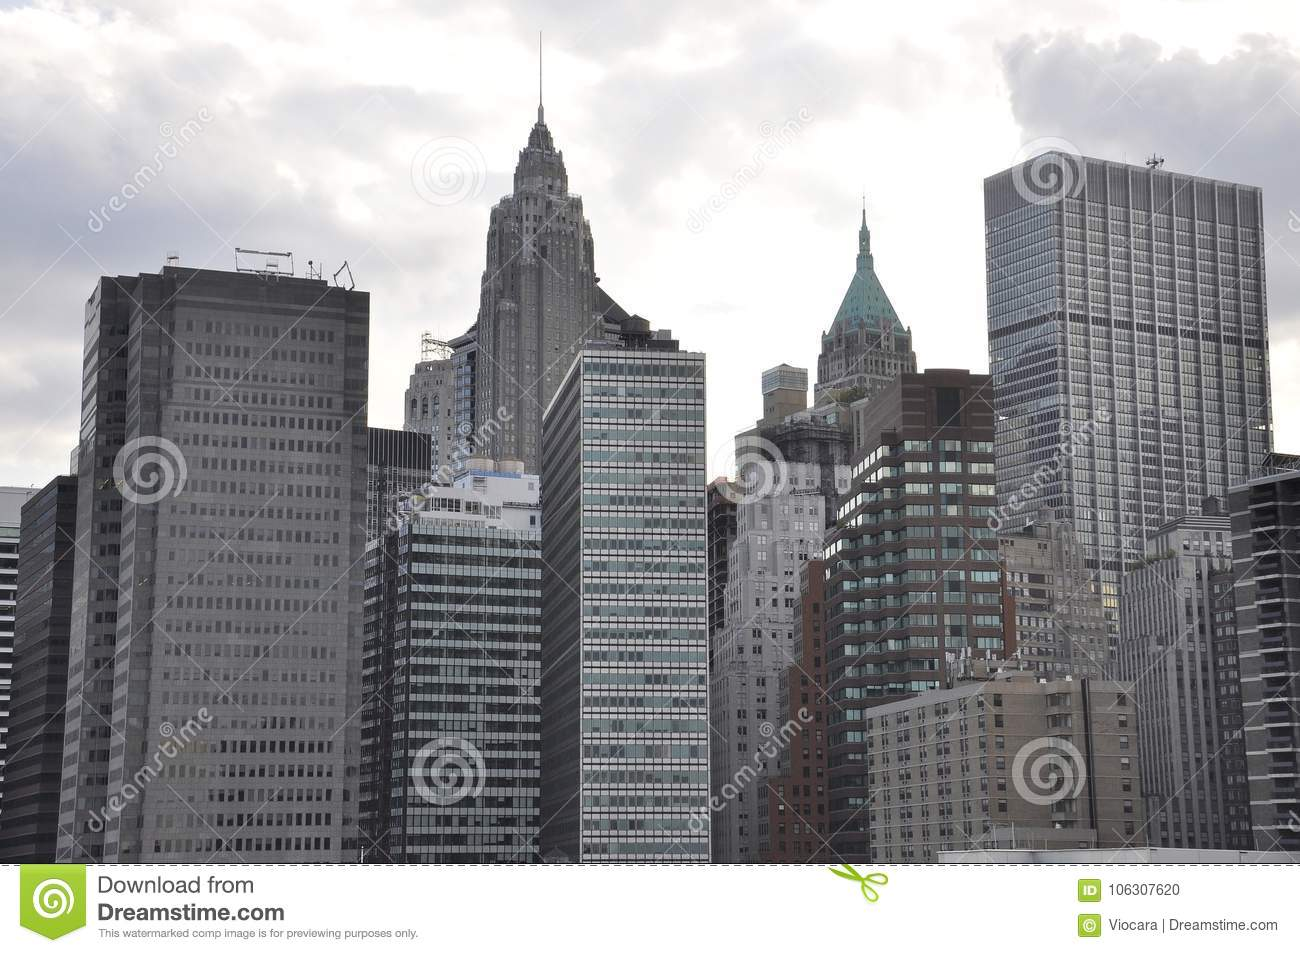 East Manhattan Skyscrapers from New York City in United States